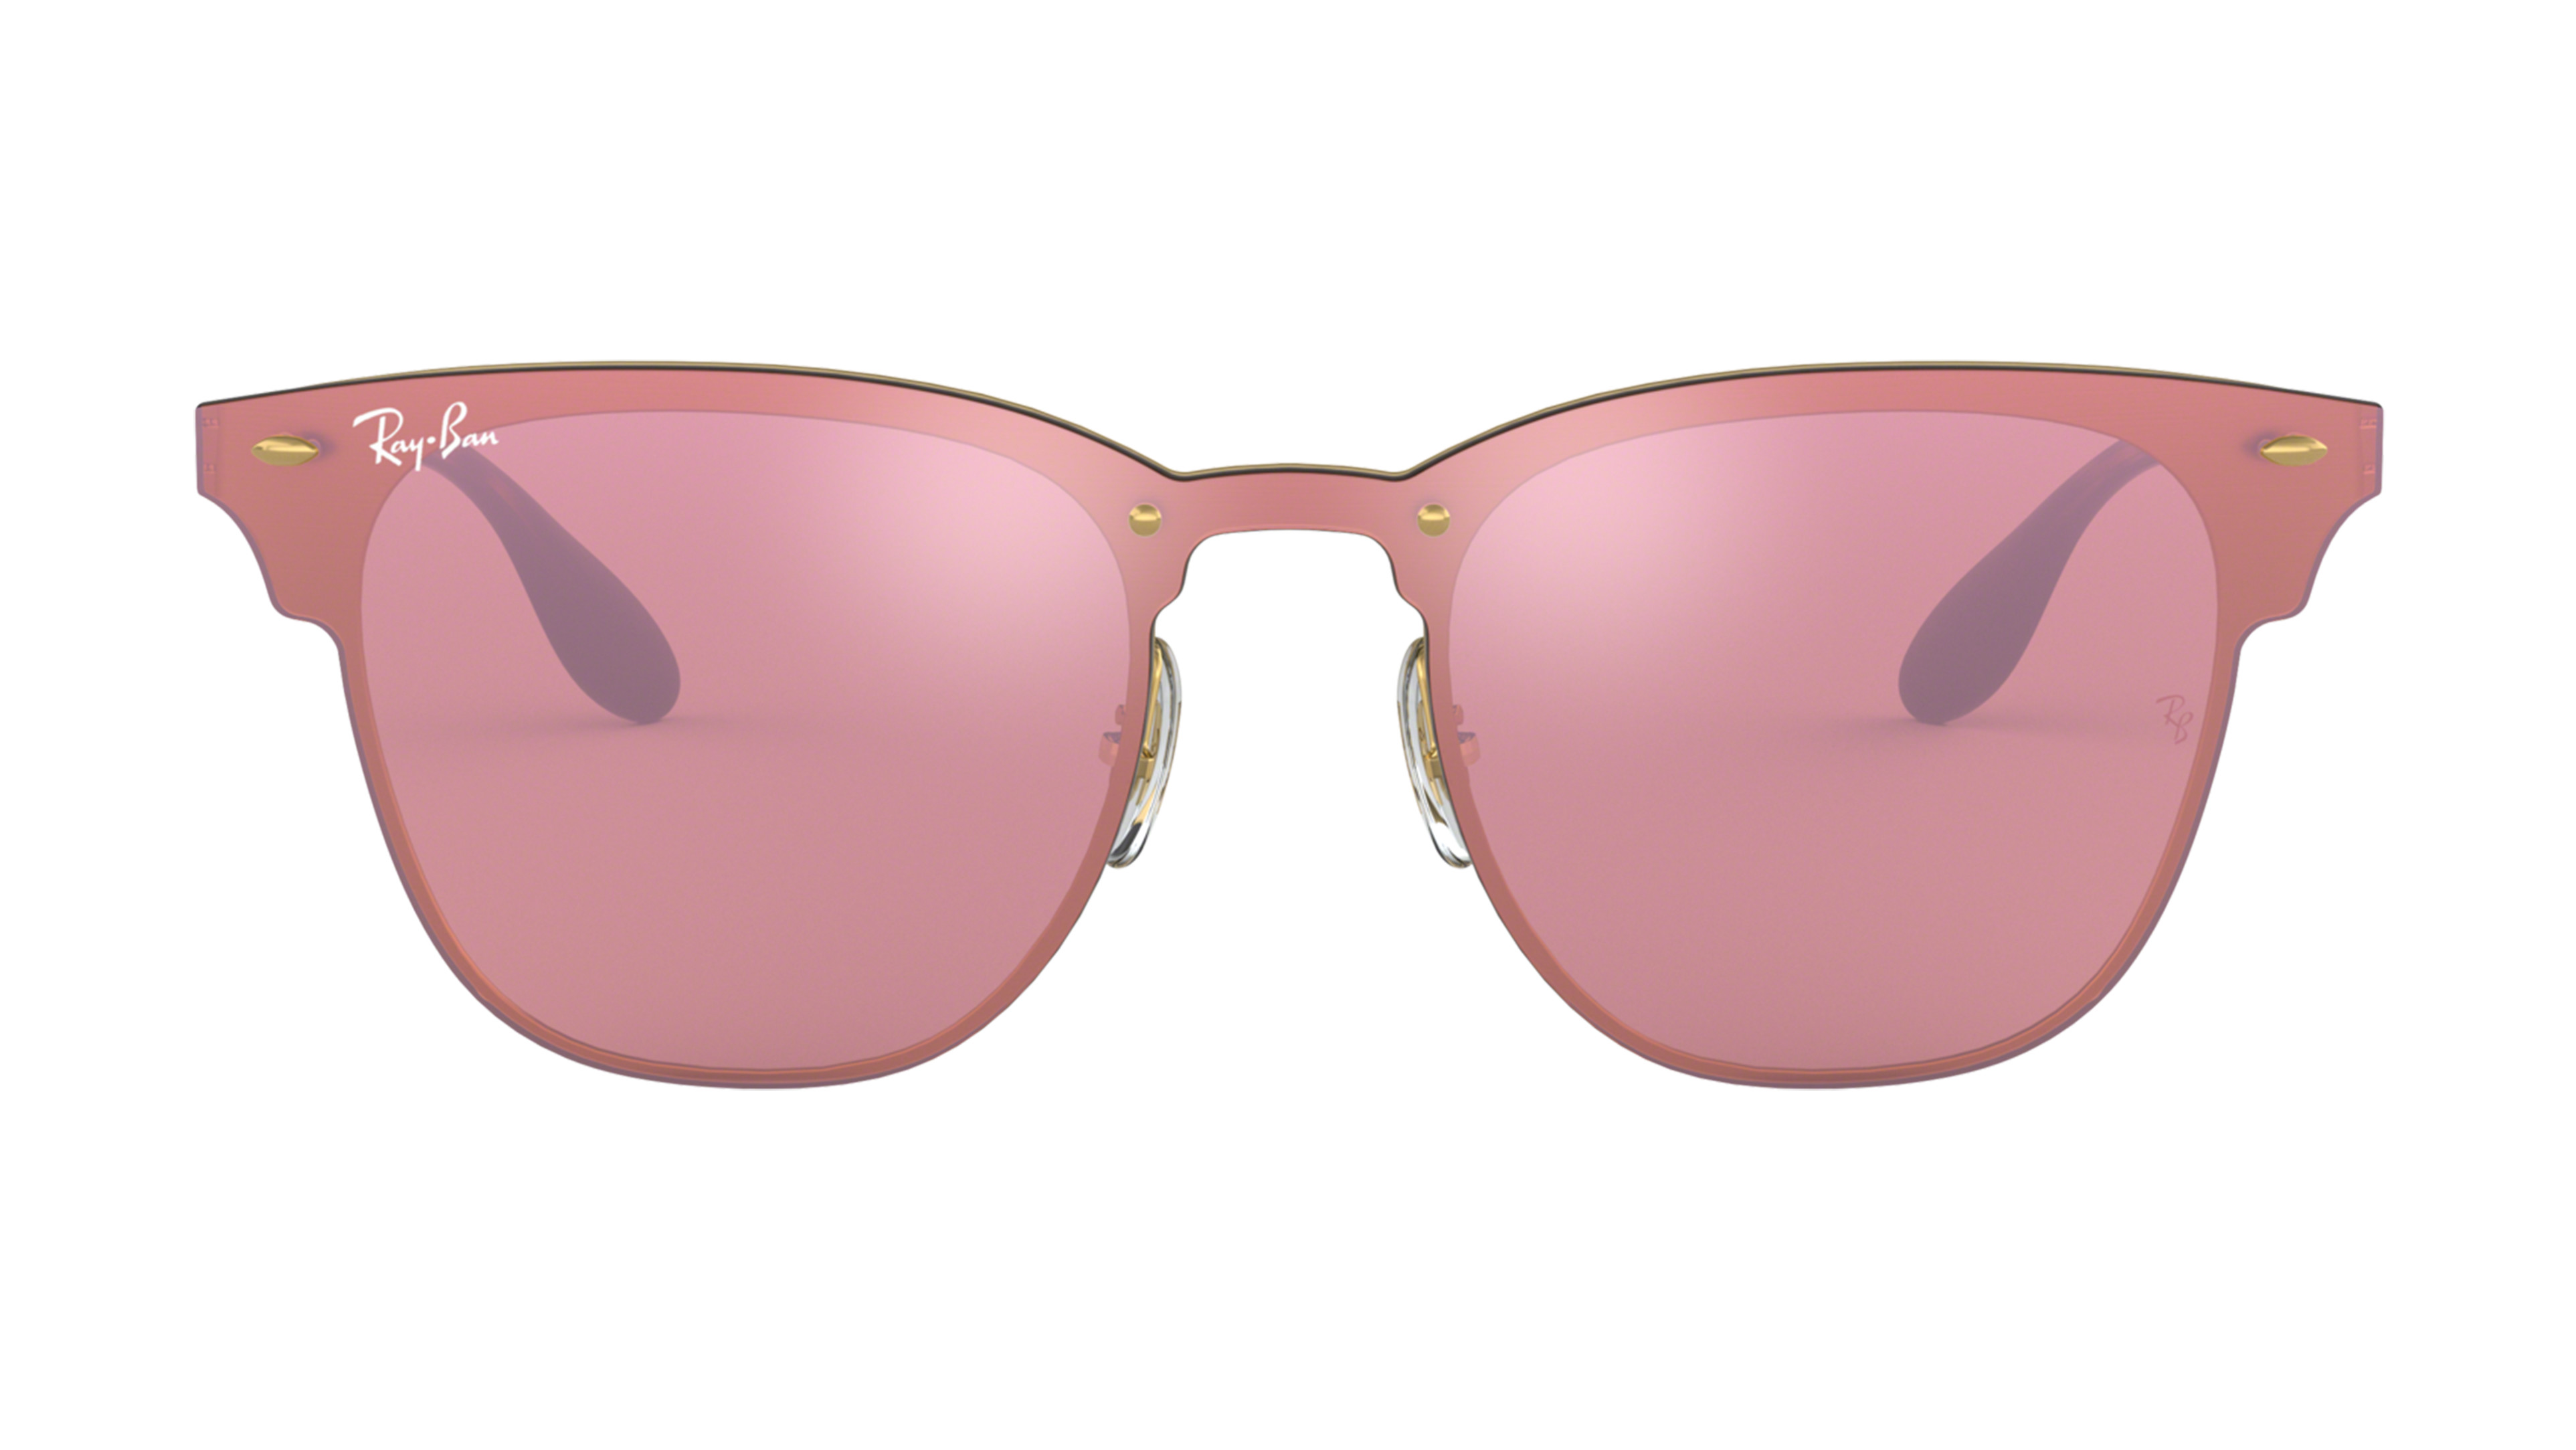 8053672763041-front-Ray-Ban-0RB3576N-043-E4